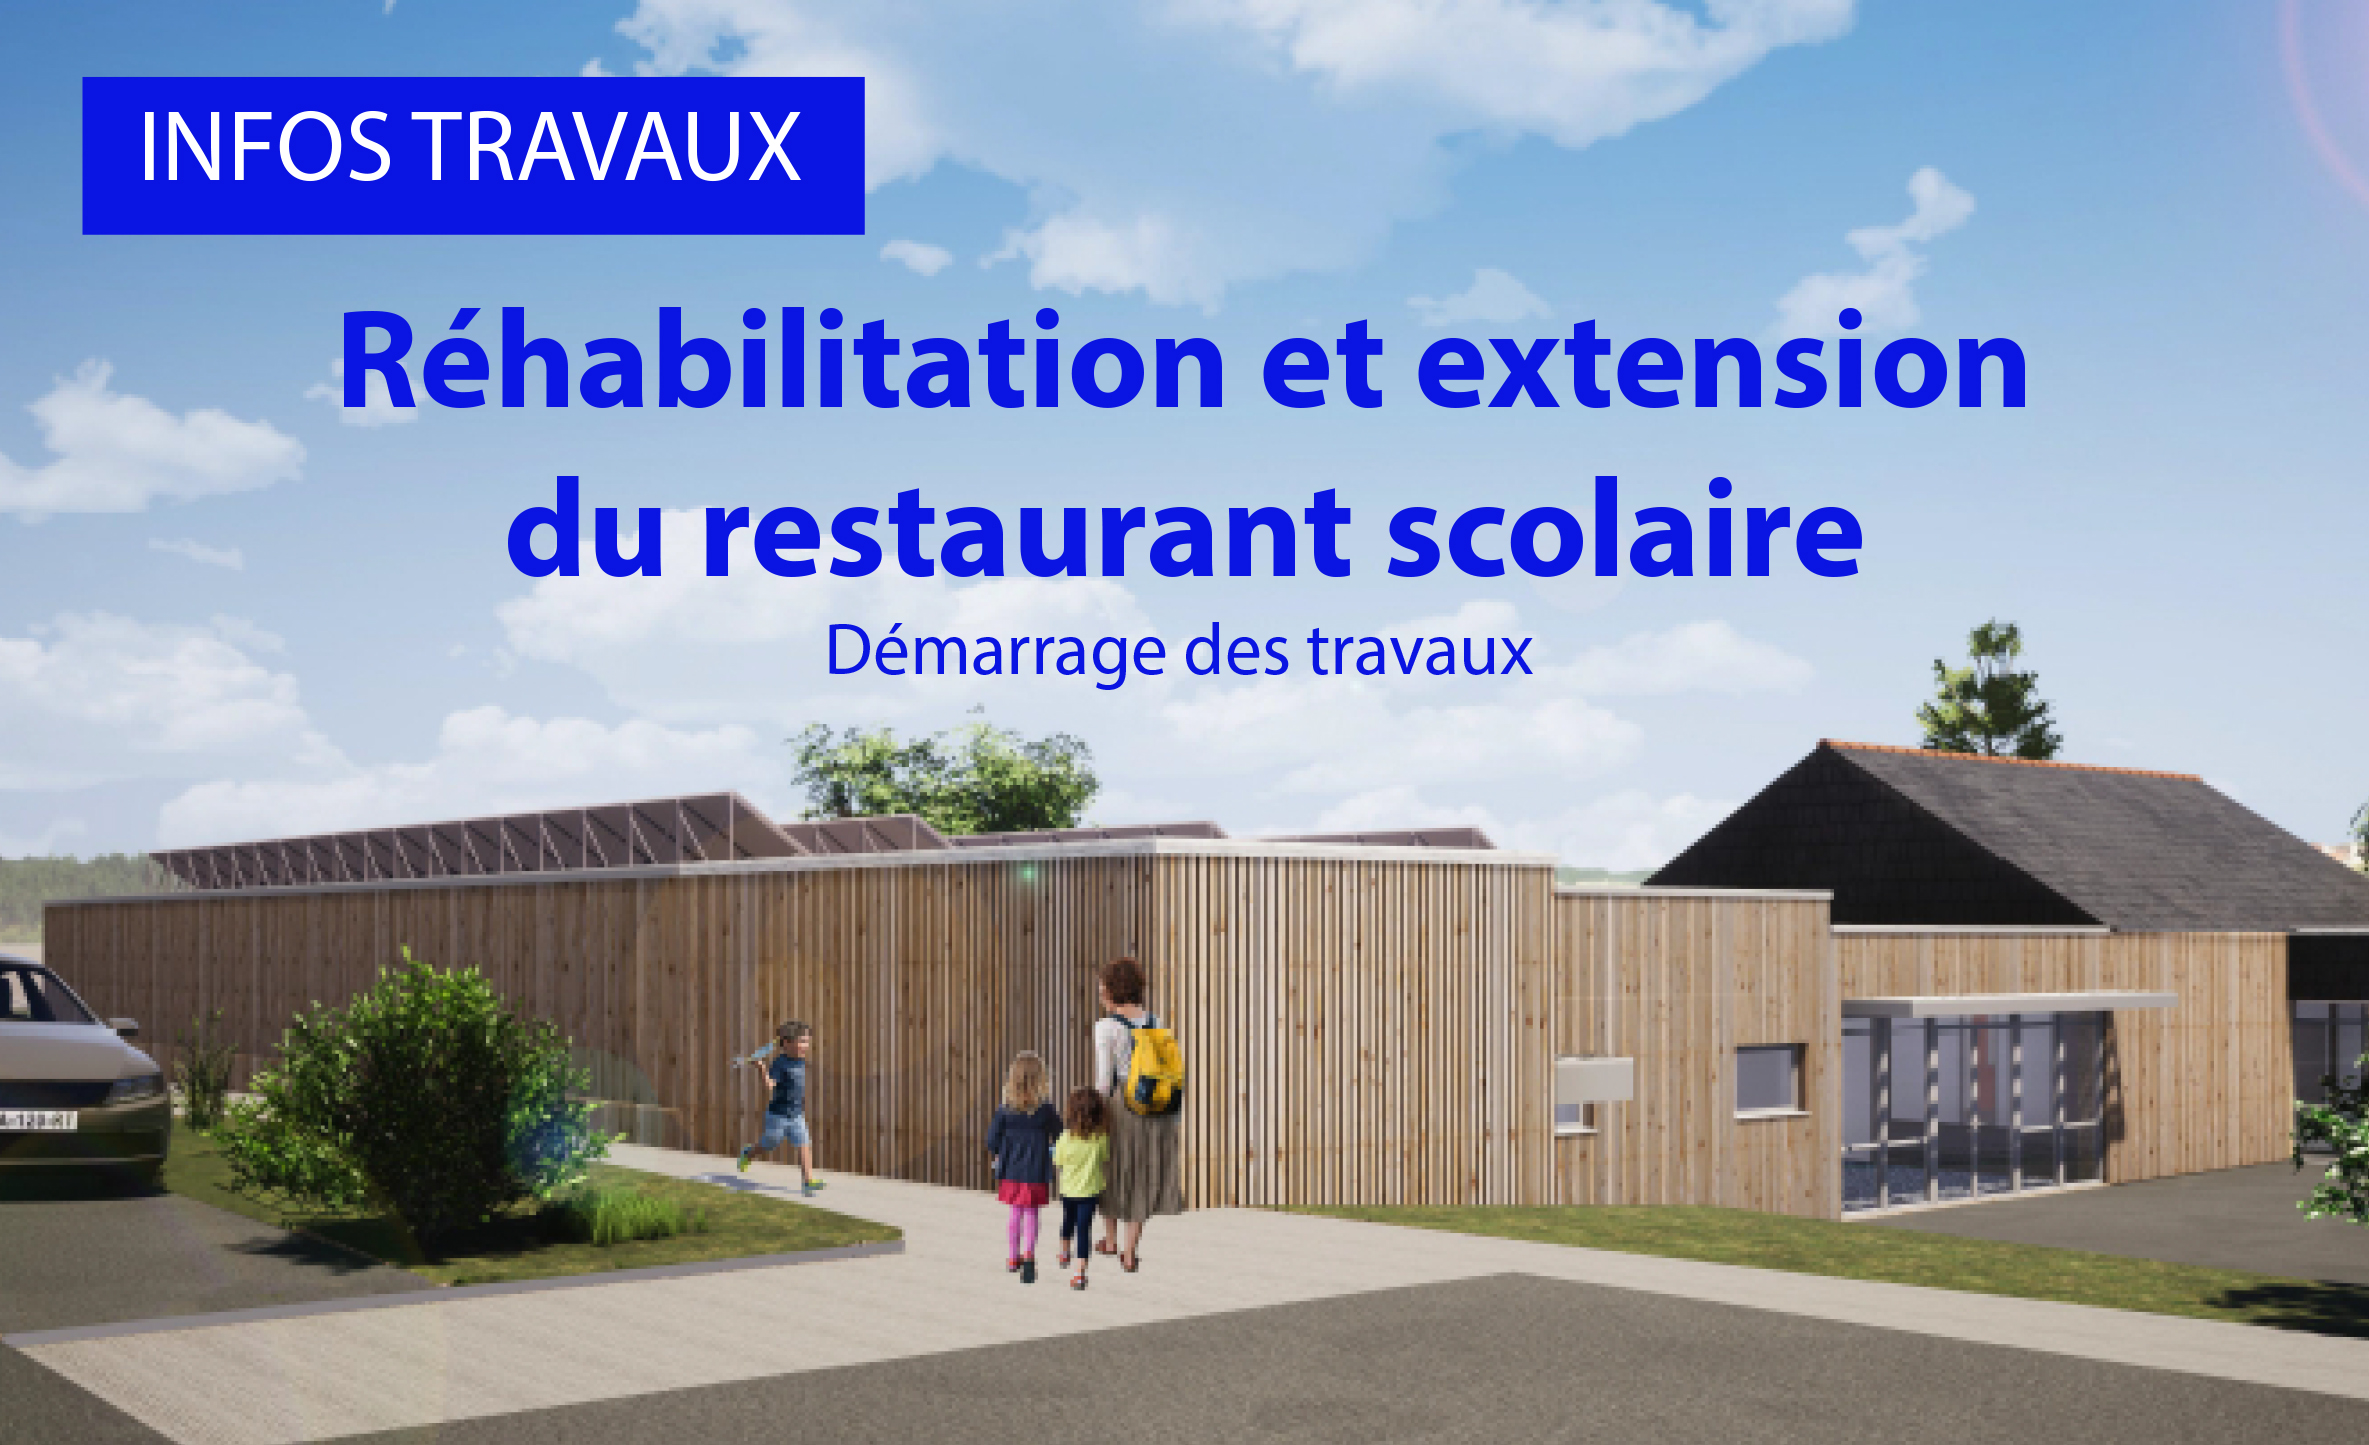 Réhabilitation et extension du restaurant scolaire